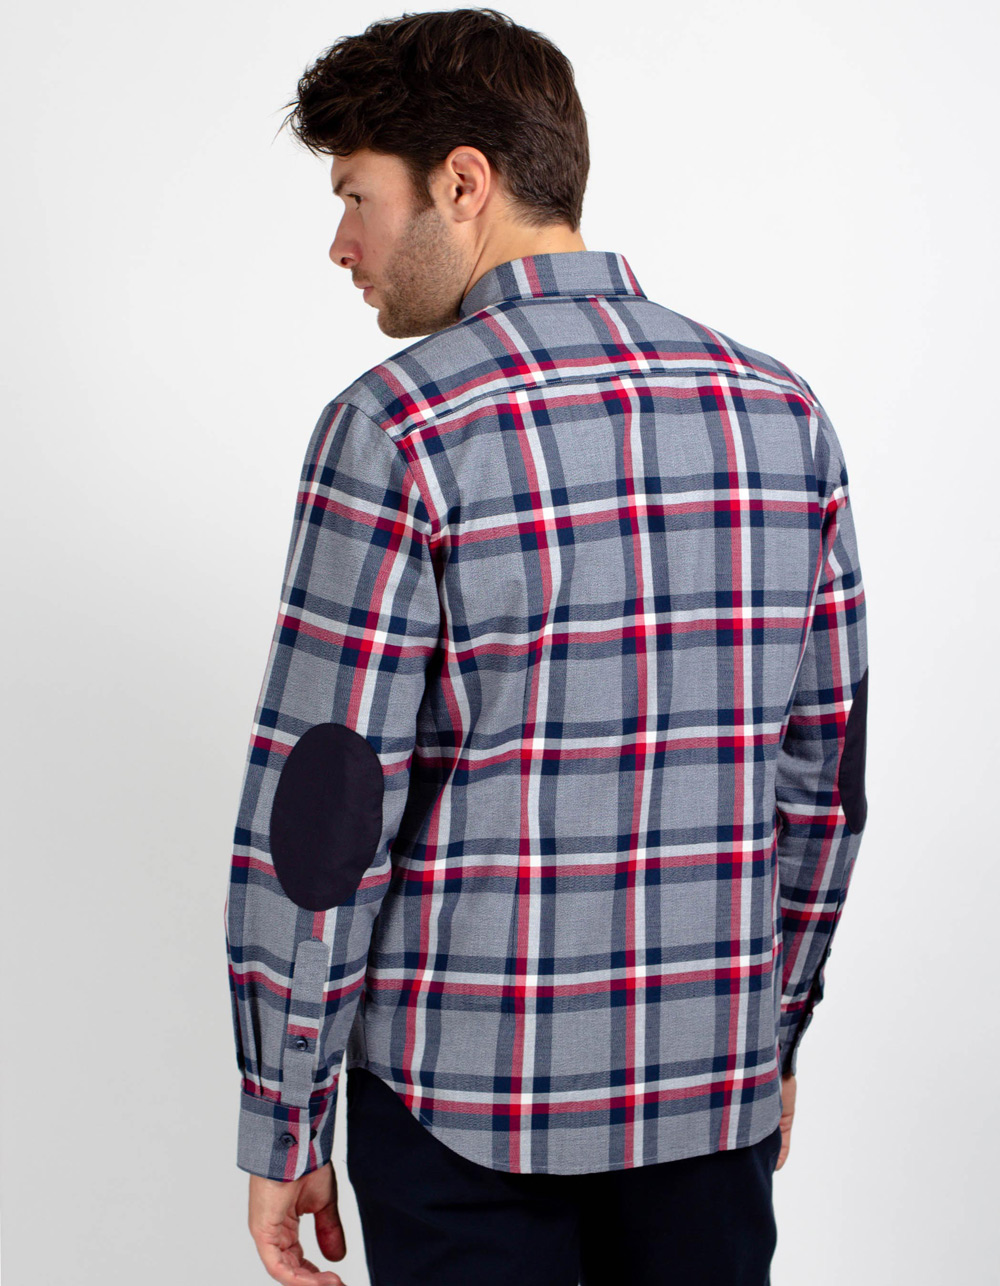 Long sleeve plaid shirt - Backside